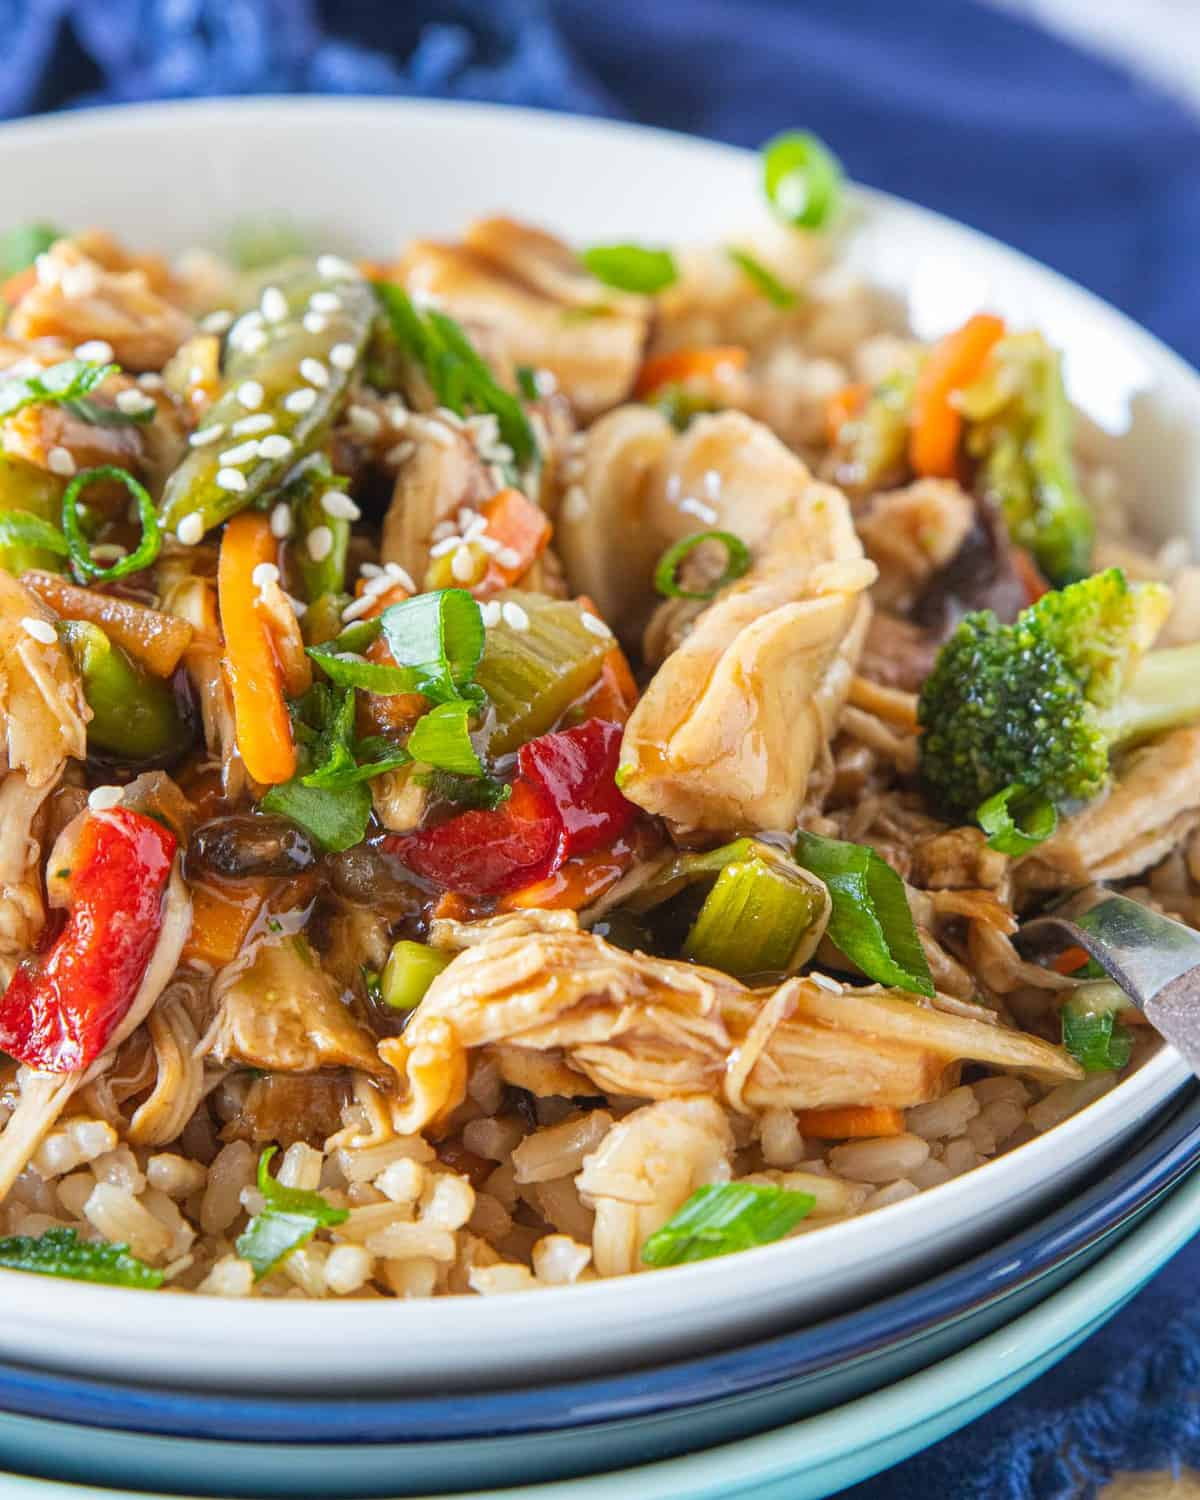 instant pot chicken stir fry on top of a bed of rice in a bowl.